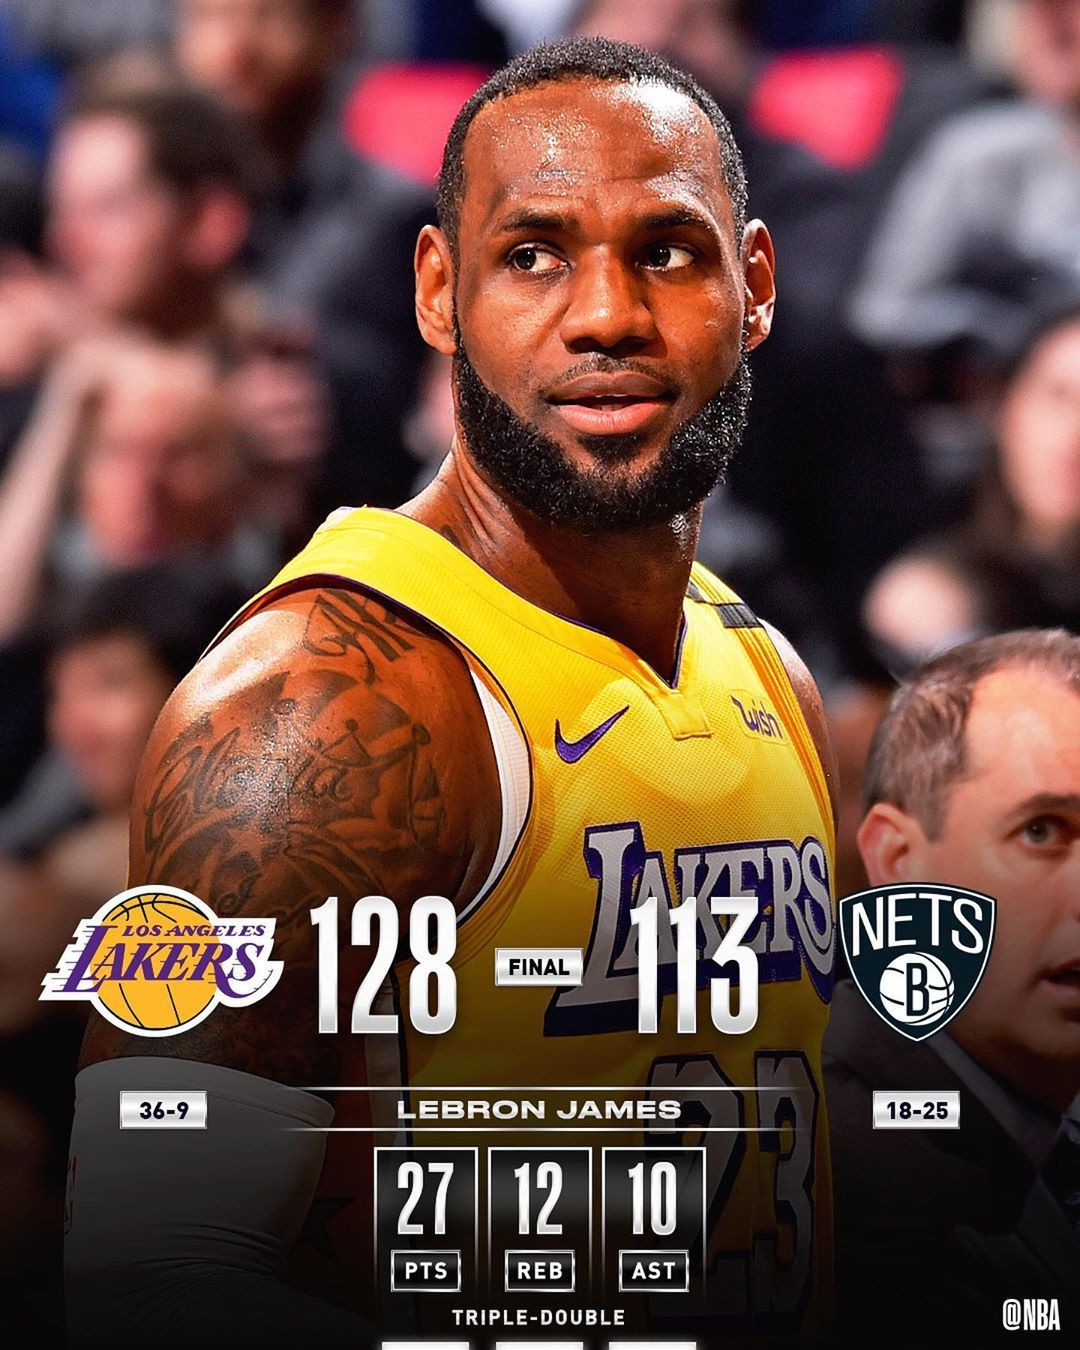 Nba On Instagram The Lakers Dallasmavs Washwizards Each Win Thursday Night In 2020 Lebron James Lakers Nba Player Stats Nba